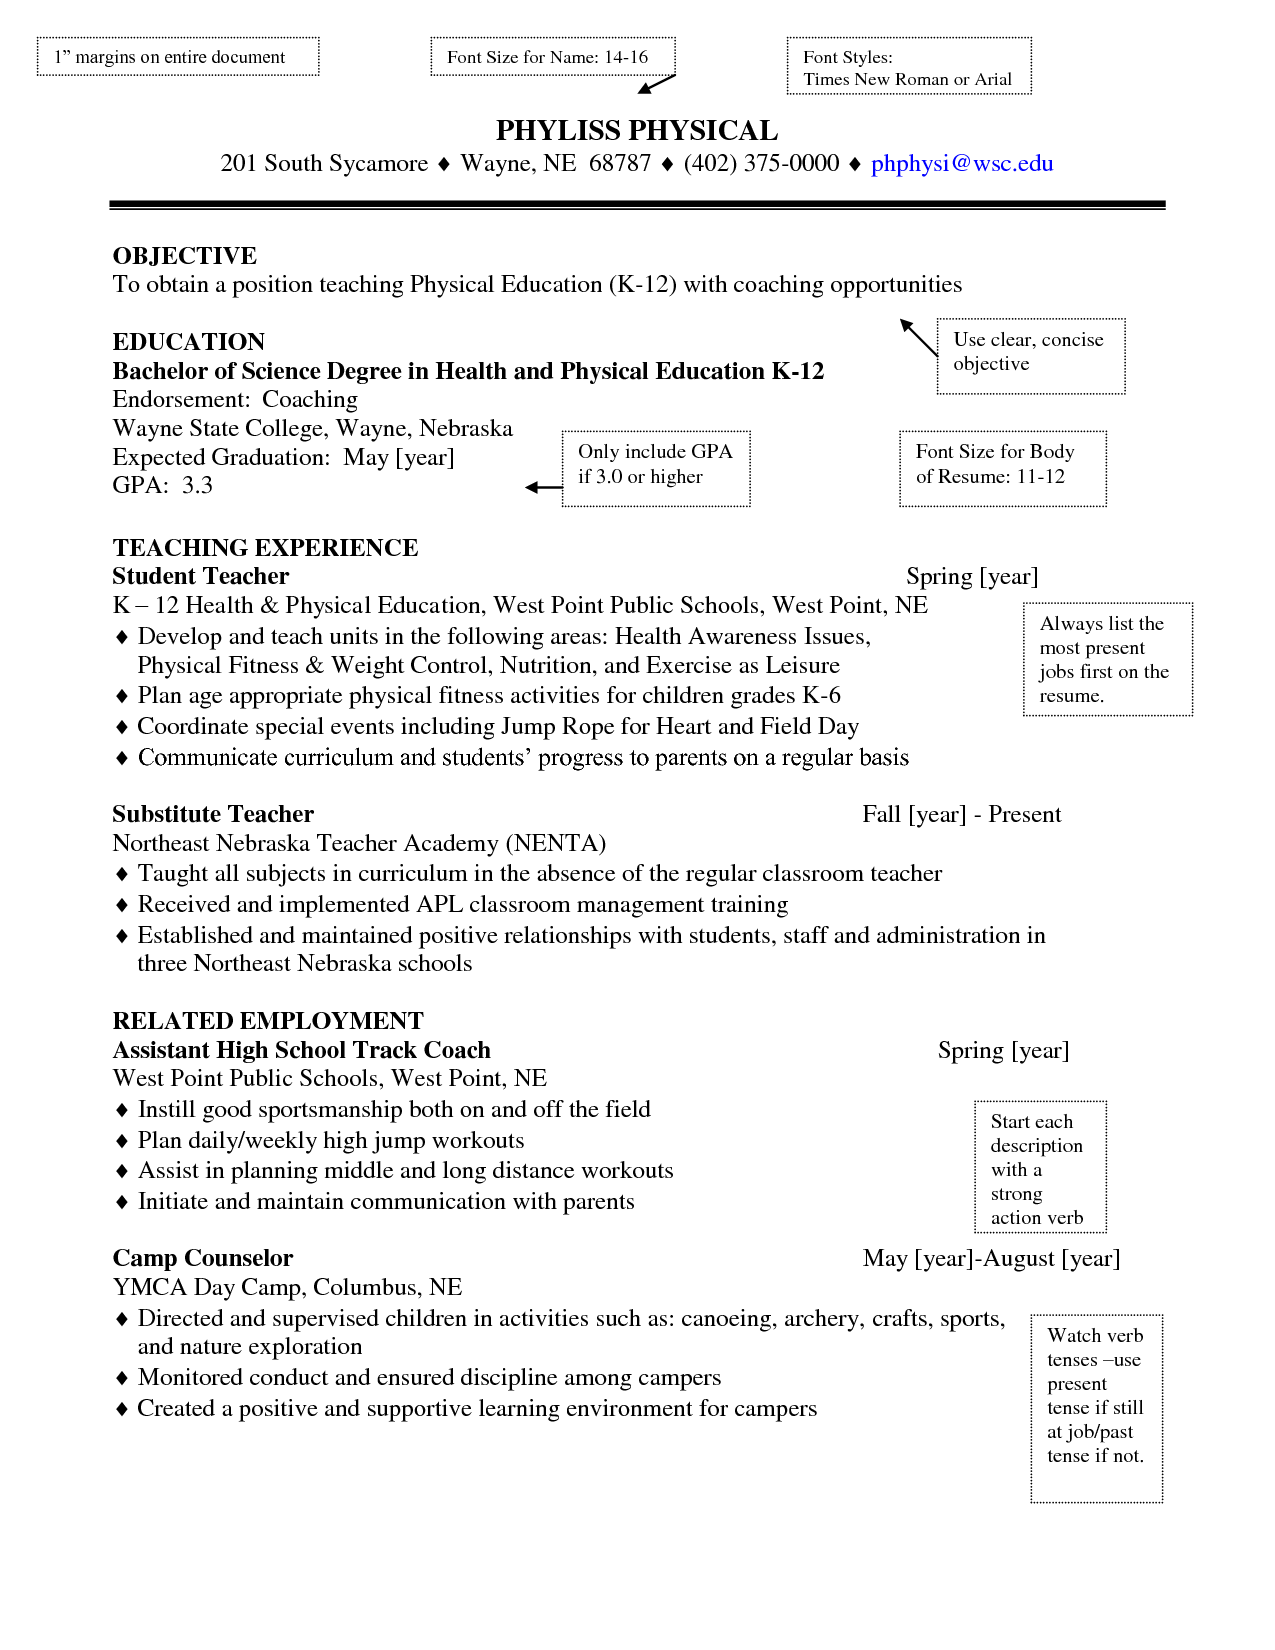 samples of special education teacher resumes - Special Education Resume Samples